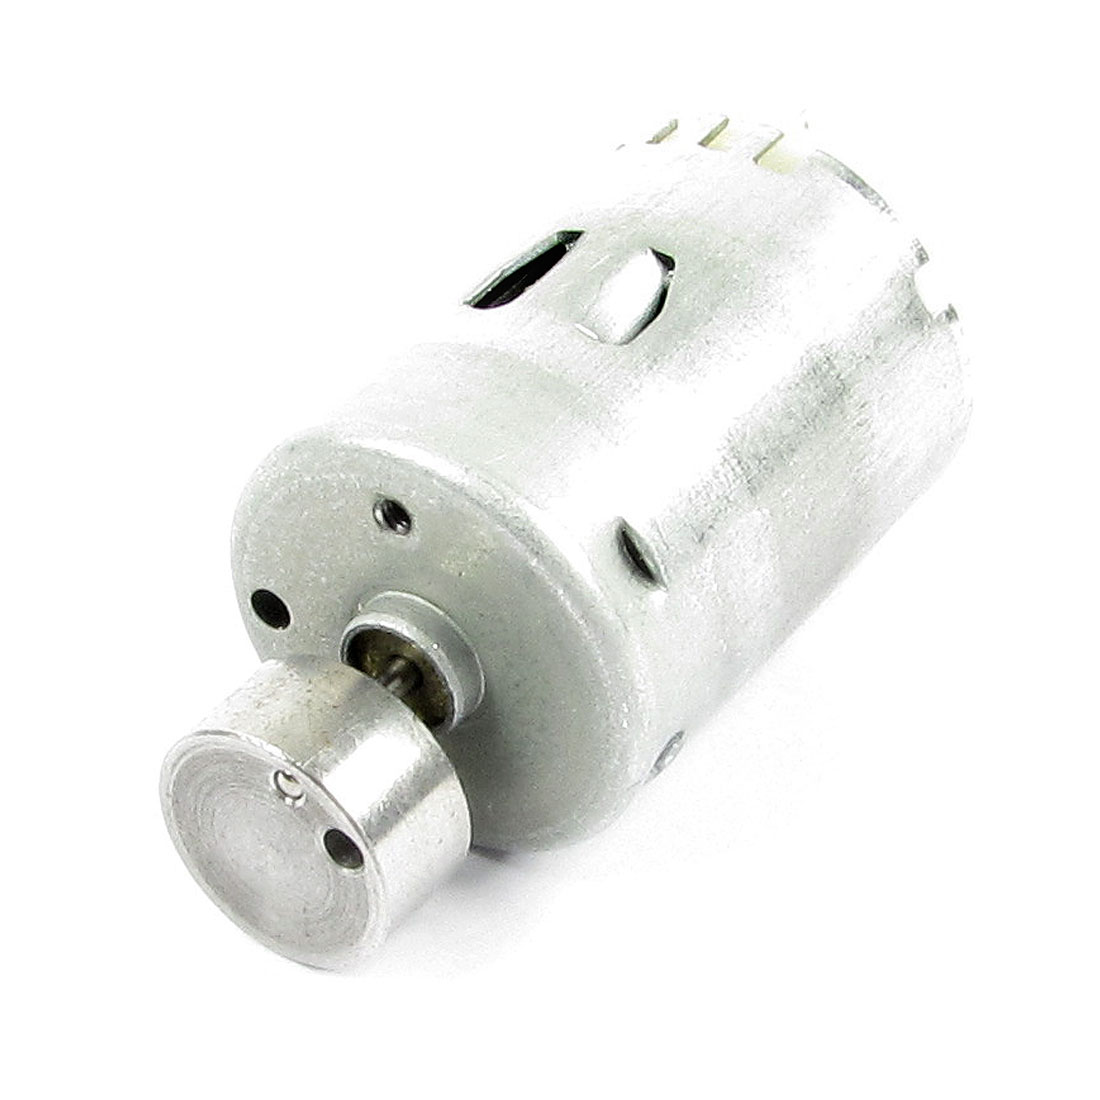 35000RPM-DC-6V-Magnetic-Vibrating-Vibration-Mini-Motor